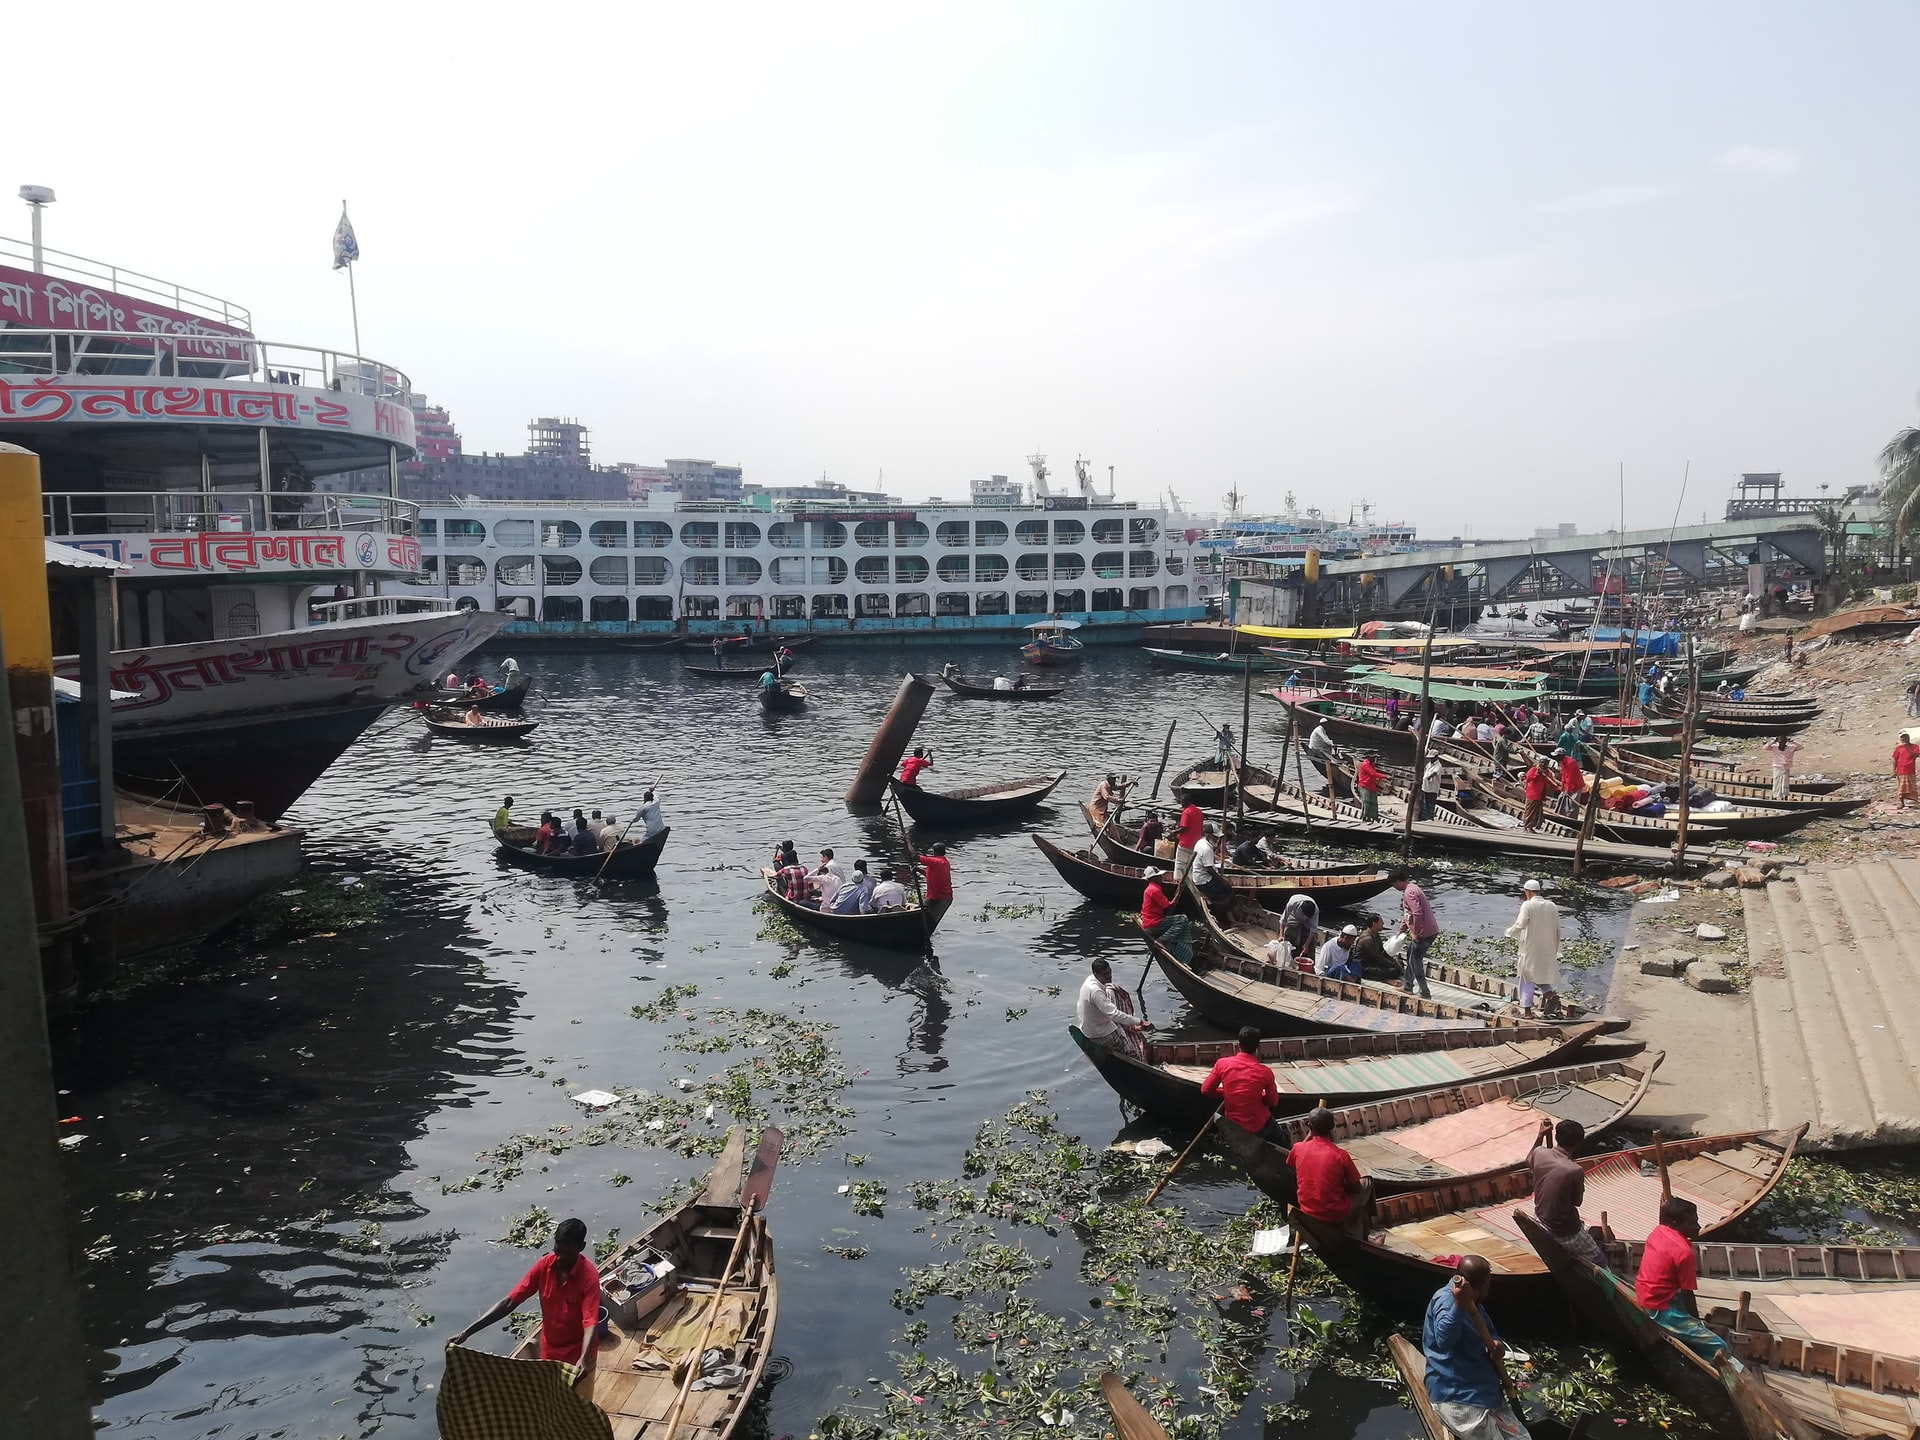 The Port of Dhaka on the Buriganga River, one of the most polluted waterways in Bangladesh.